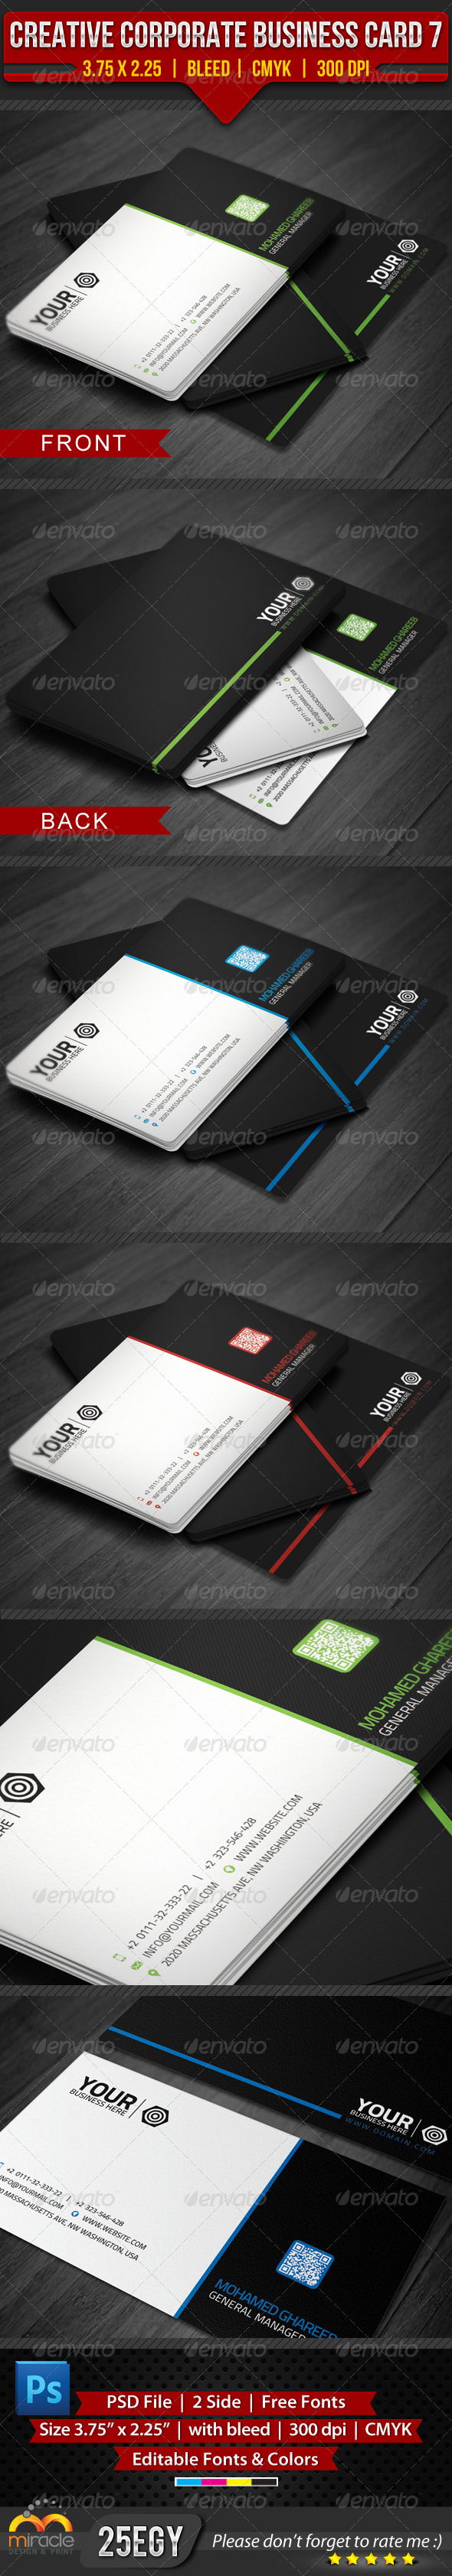 GraphicRiver Creative Corporate Business Card 7 4263658